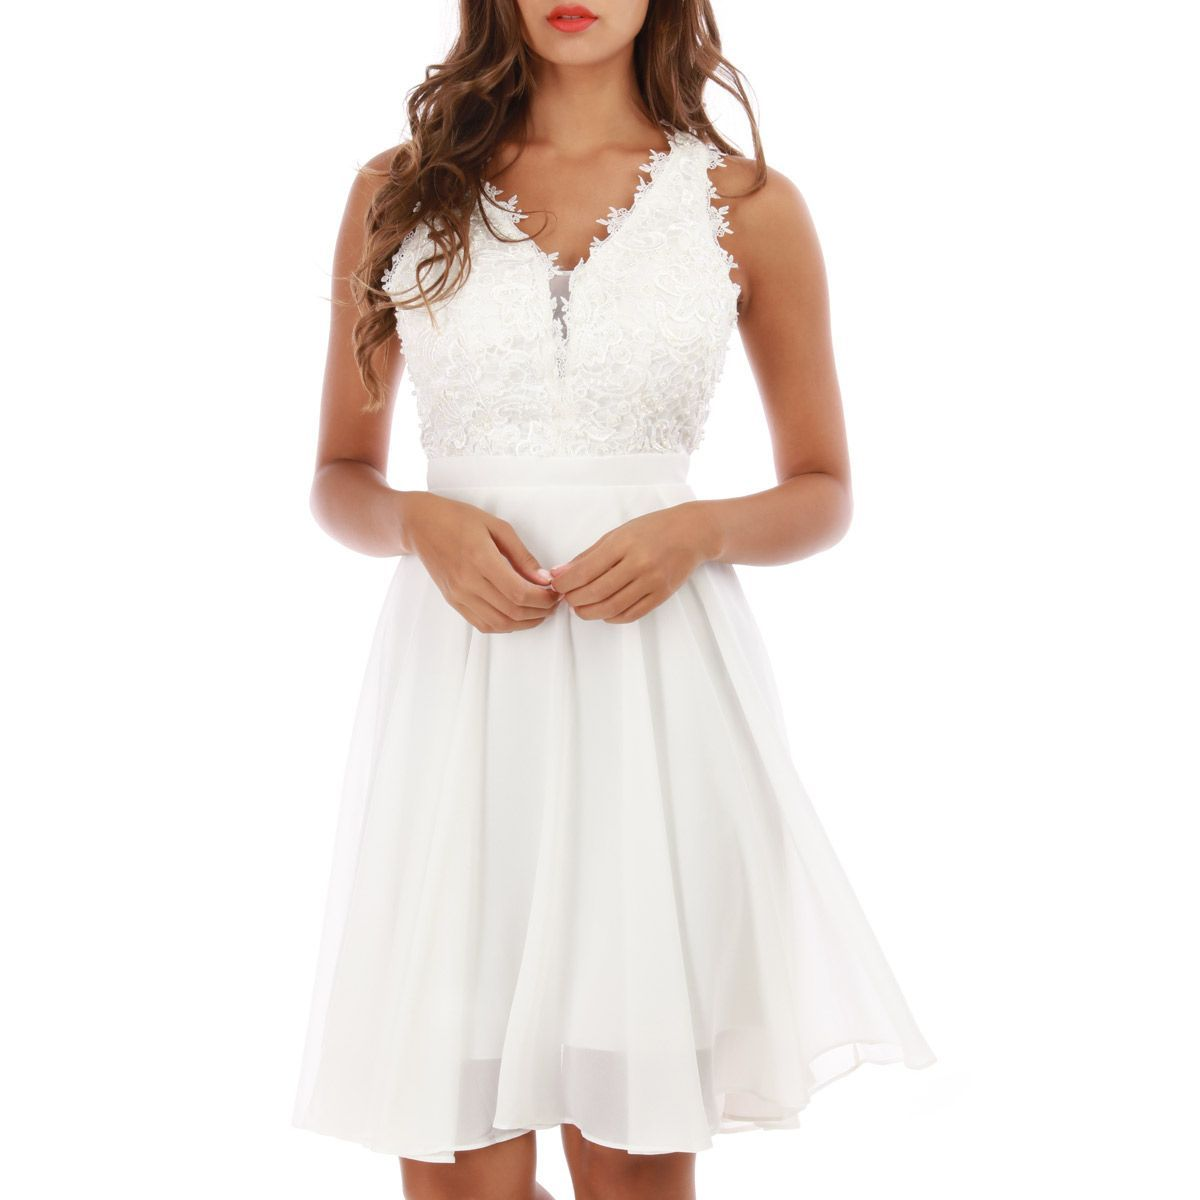 Robe blanche patineuse à broderie grandes tailles